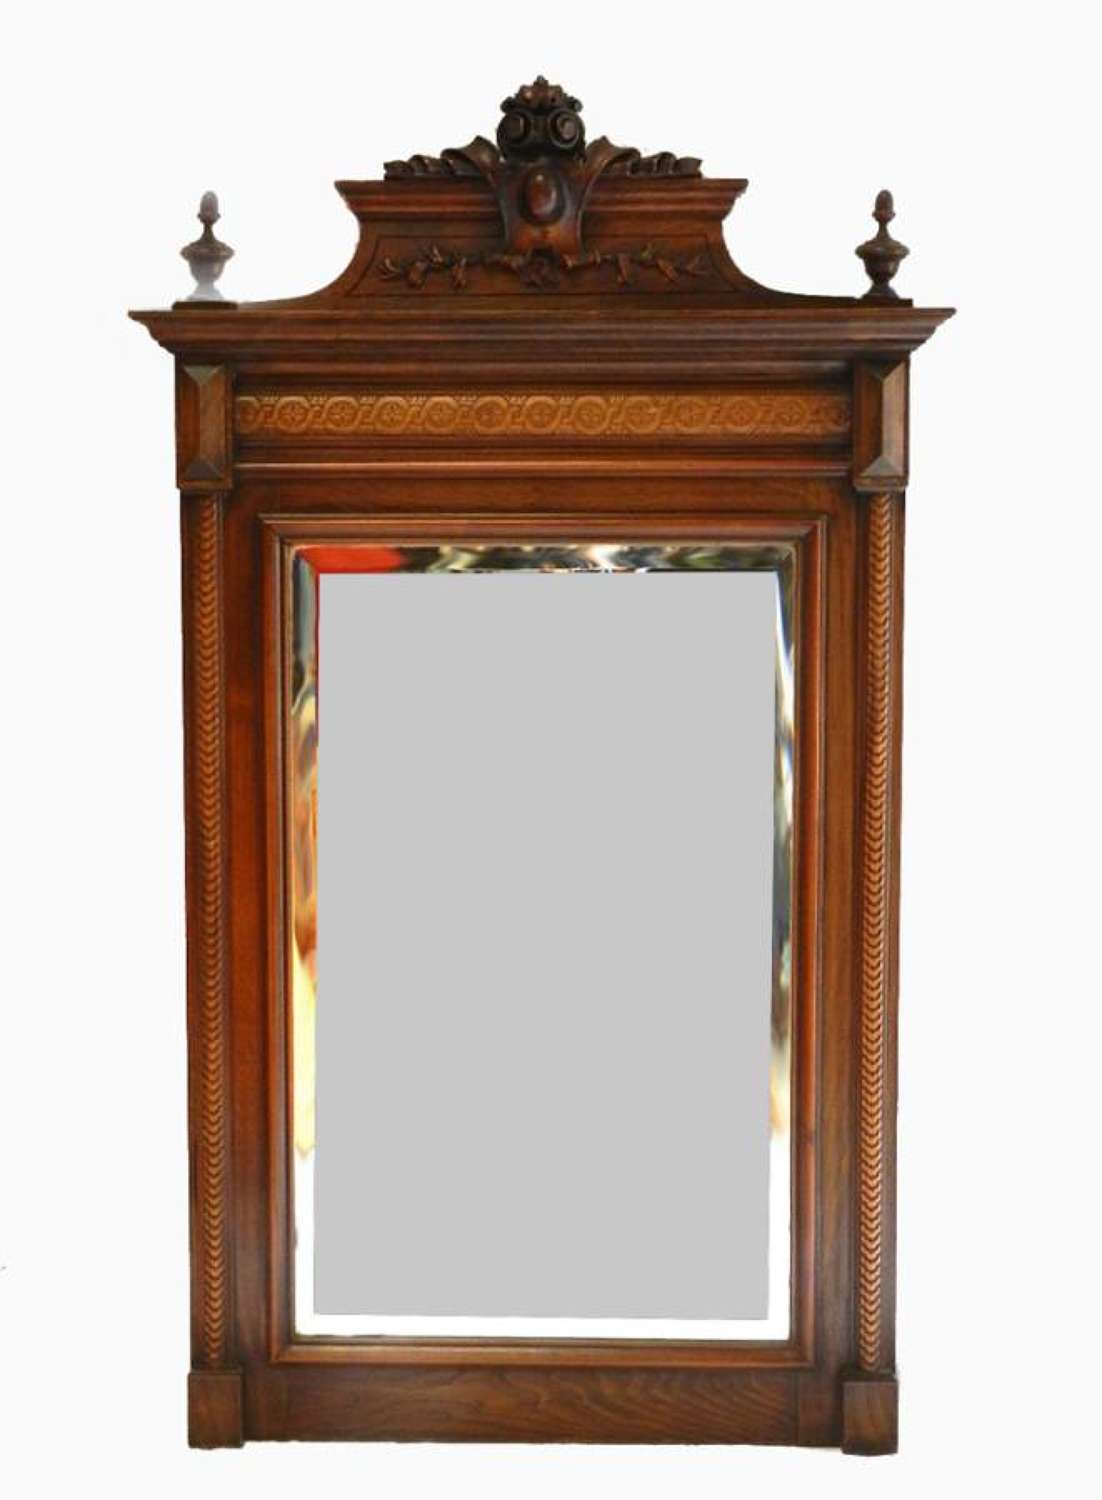 C19 French Mirror Crested Over Mantle / Mantel